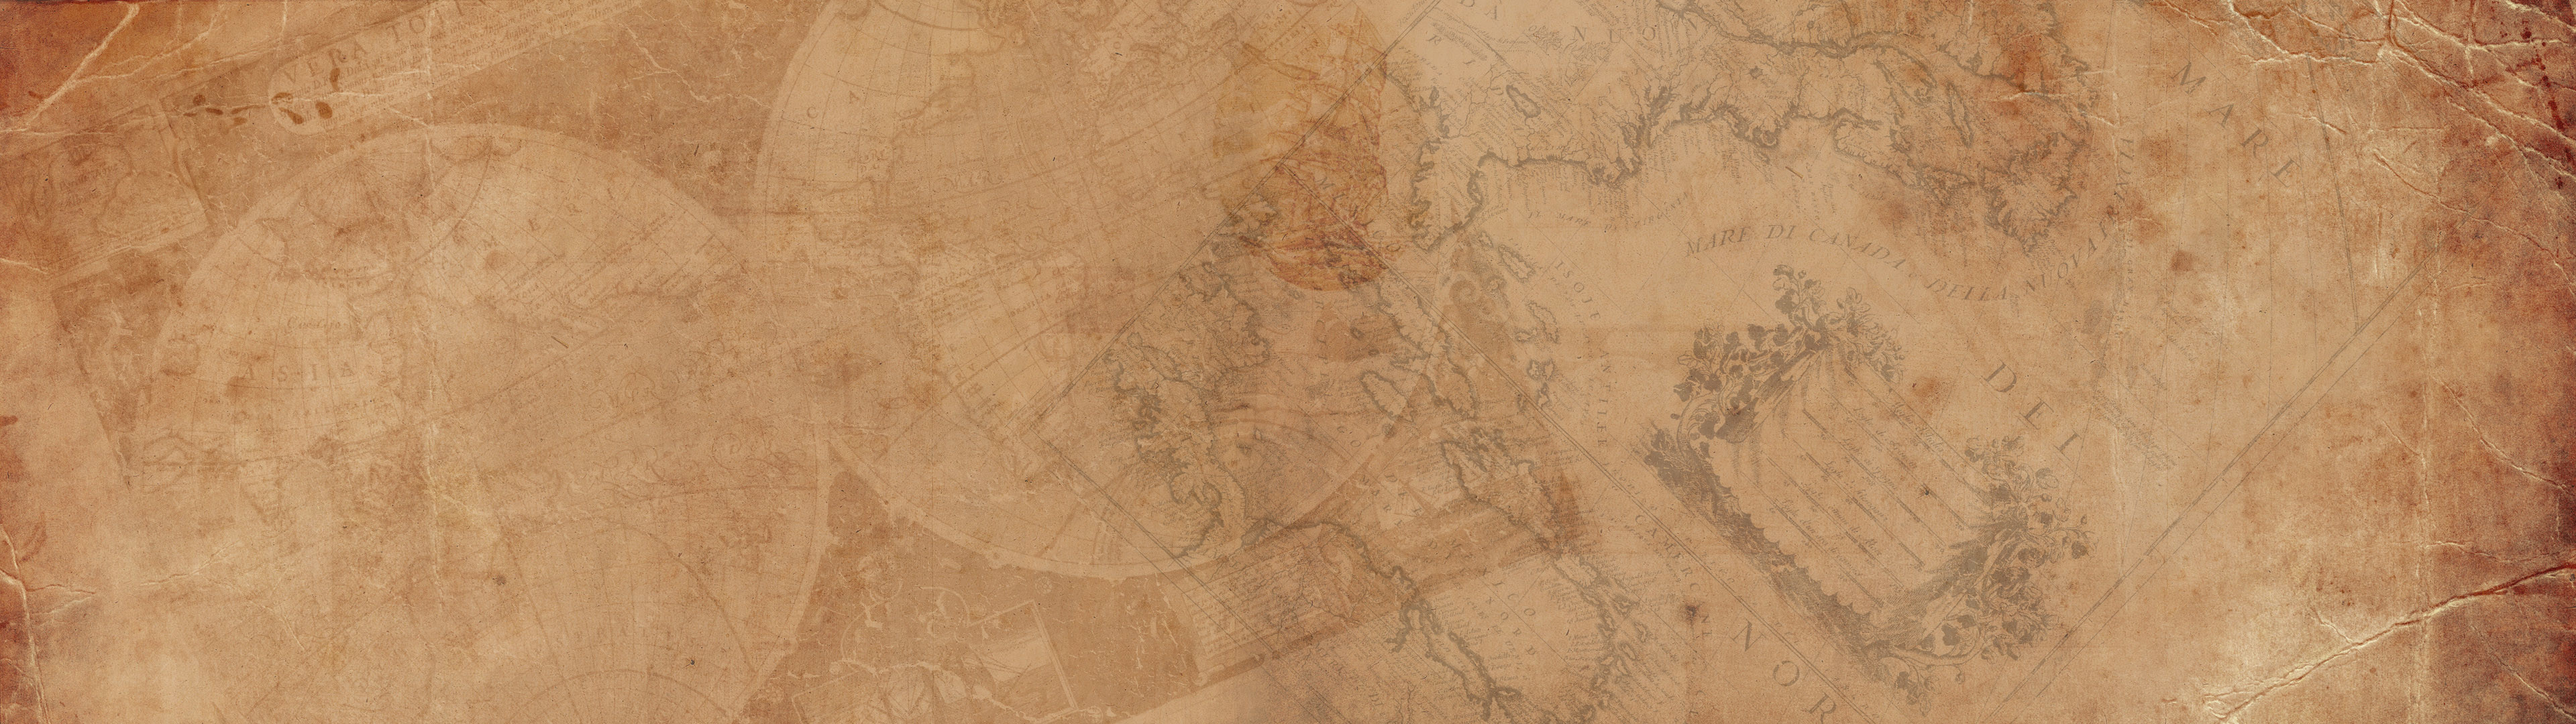 3840x1080 Old map wallpaper from Lifehacker.